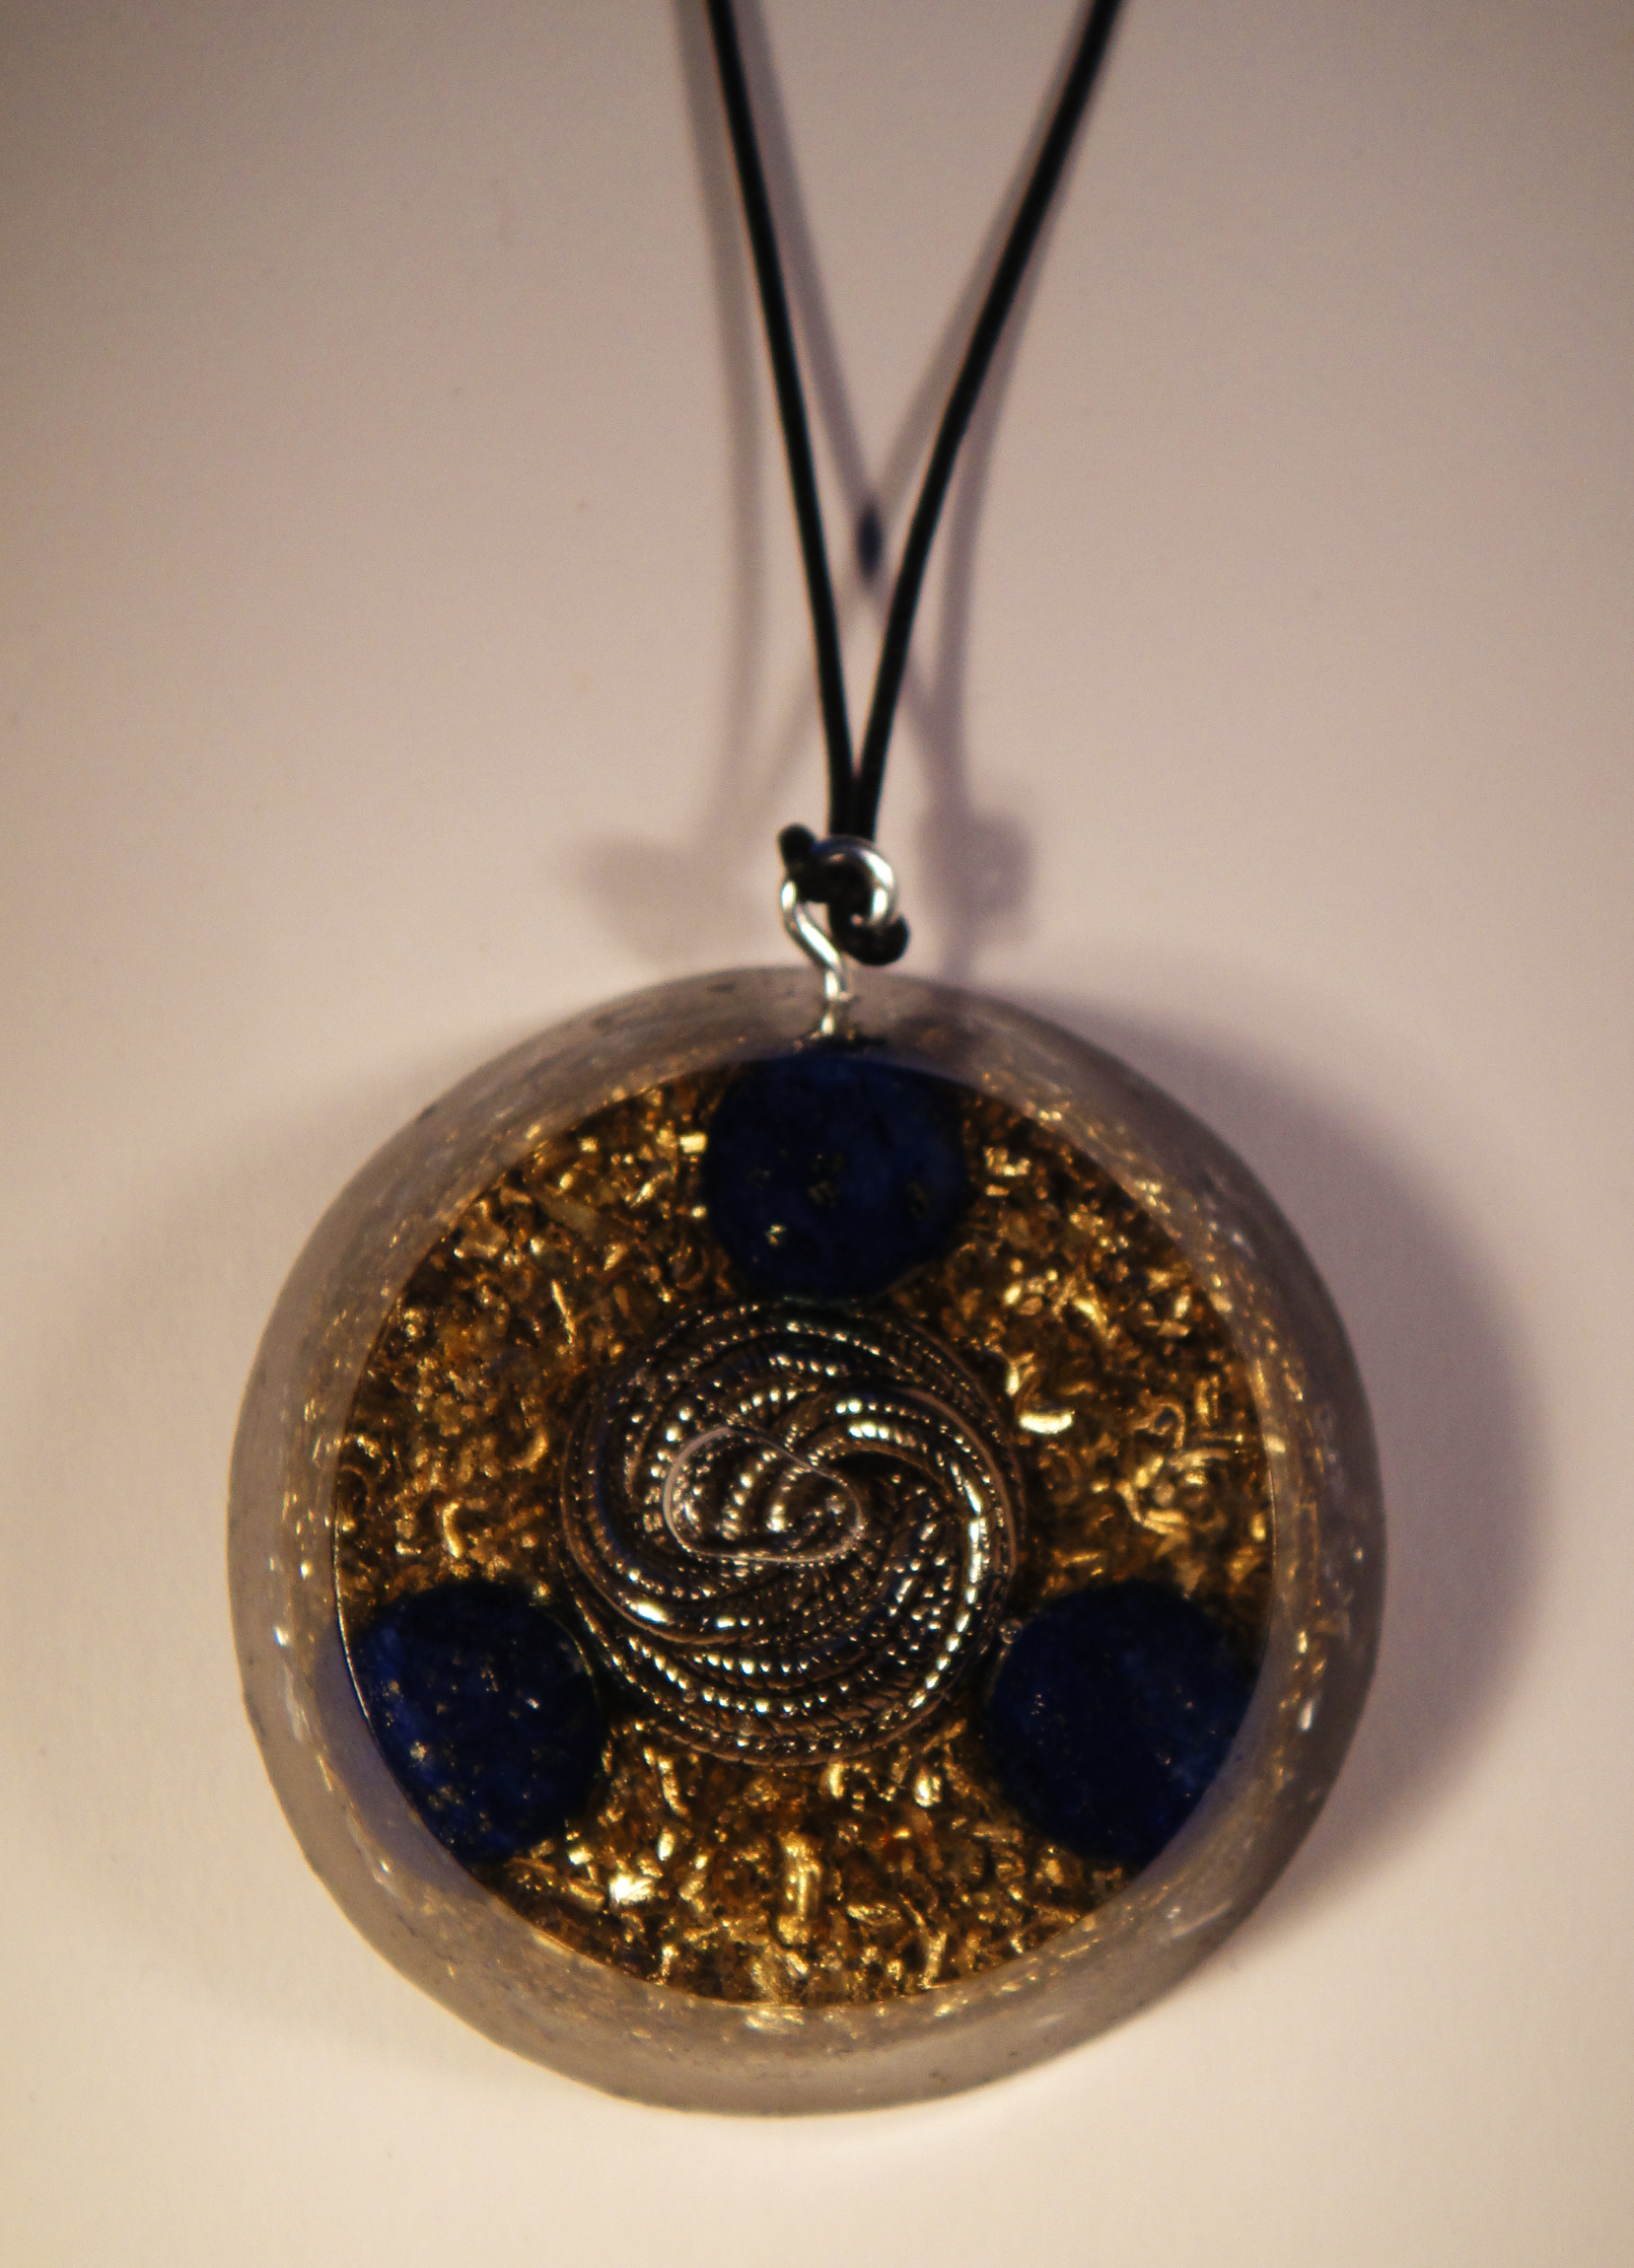 orgonite pendants and their properties